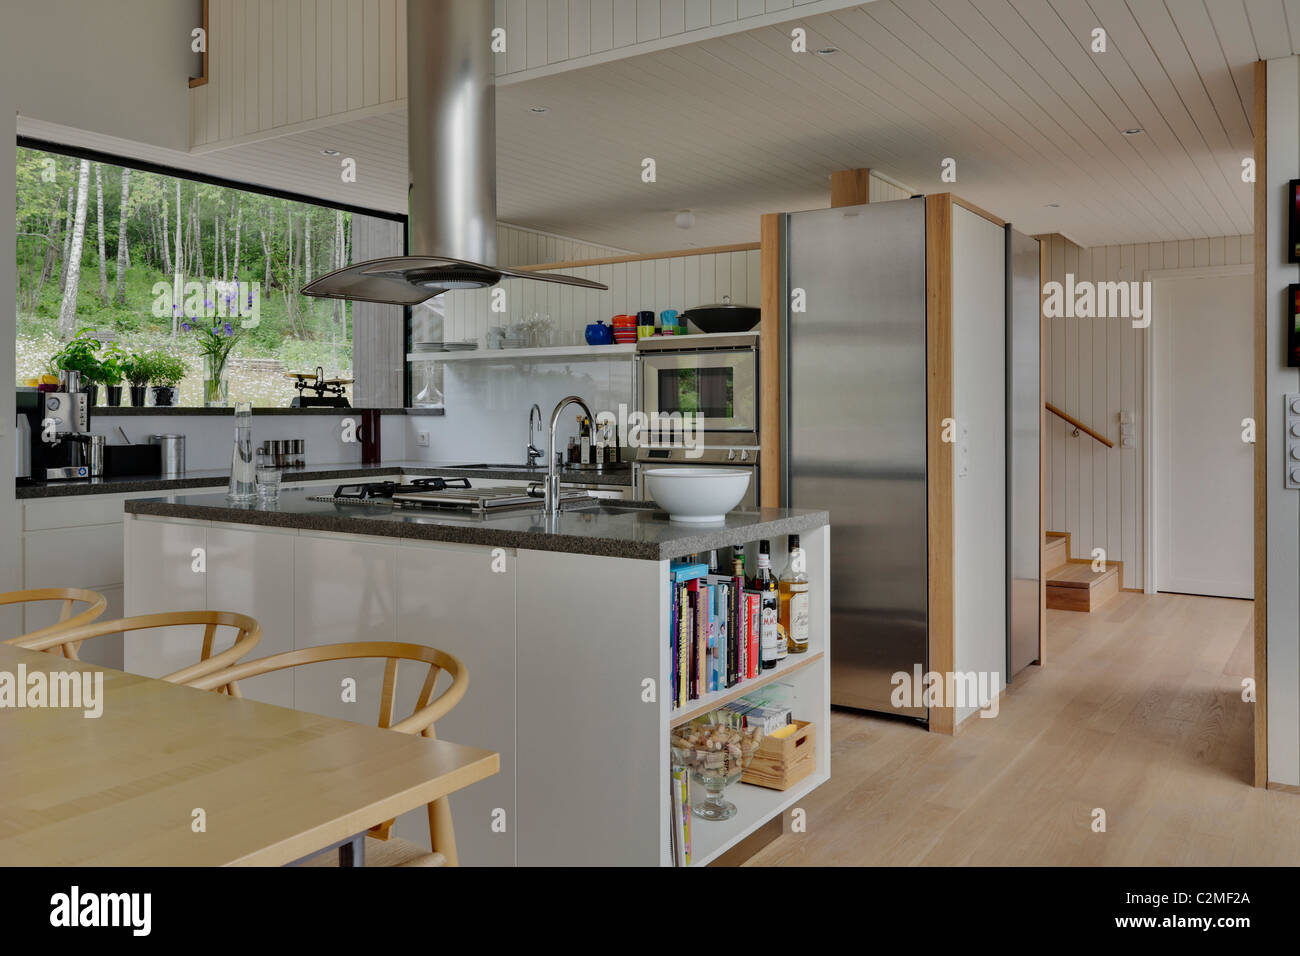 Kitchen Extractor Hoods High Resolution Stock Photography And Images Alamy